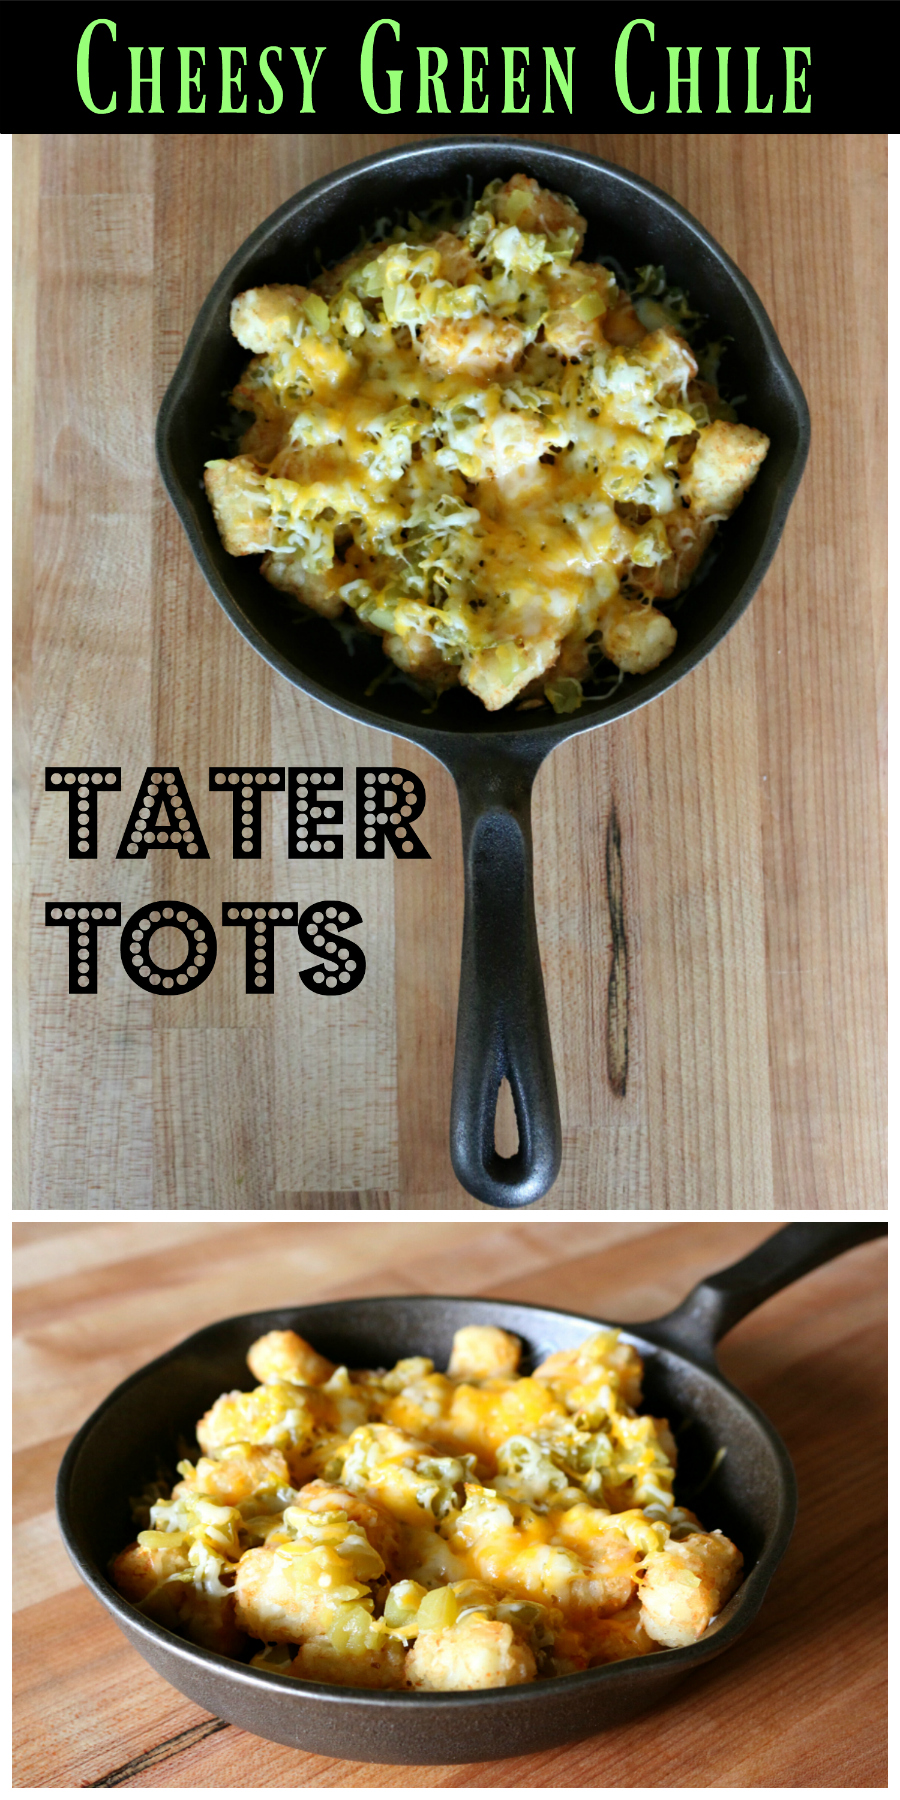 Cheesy Green Chile Tater Tots CeceliasGoodStuff.com Good Food for Good People